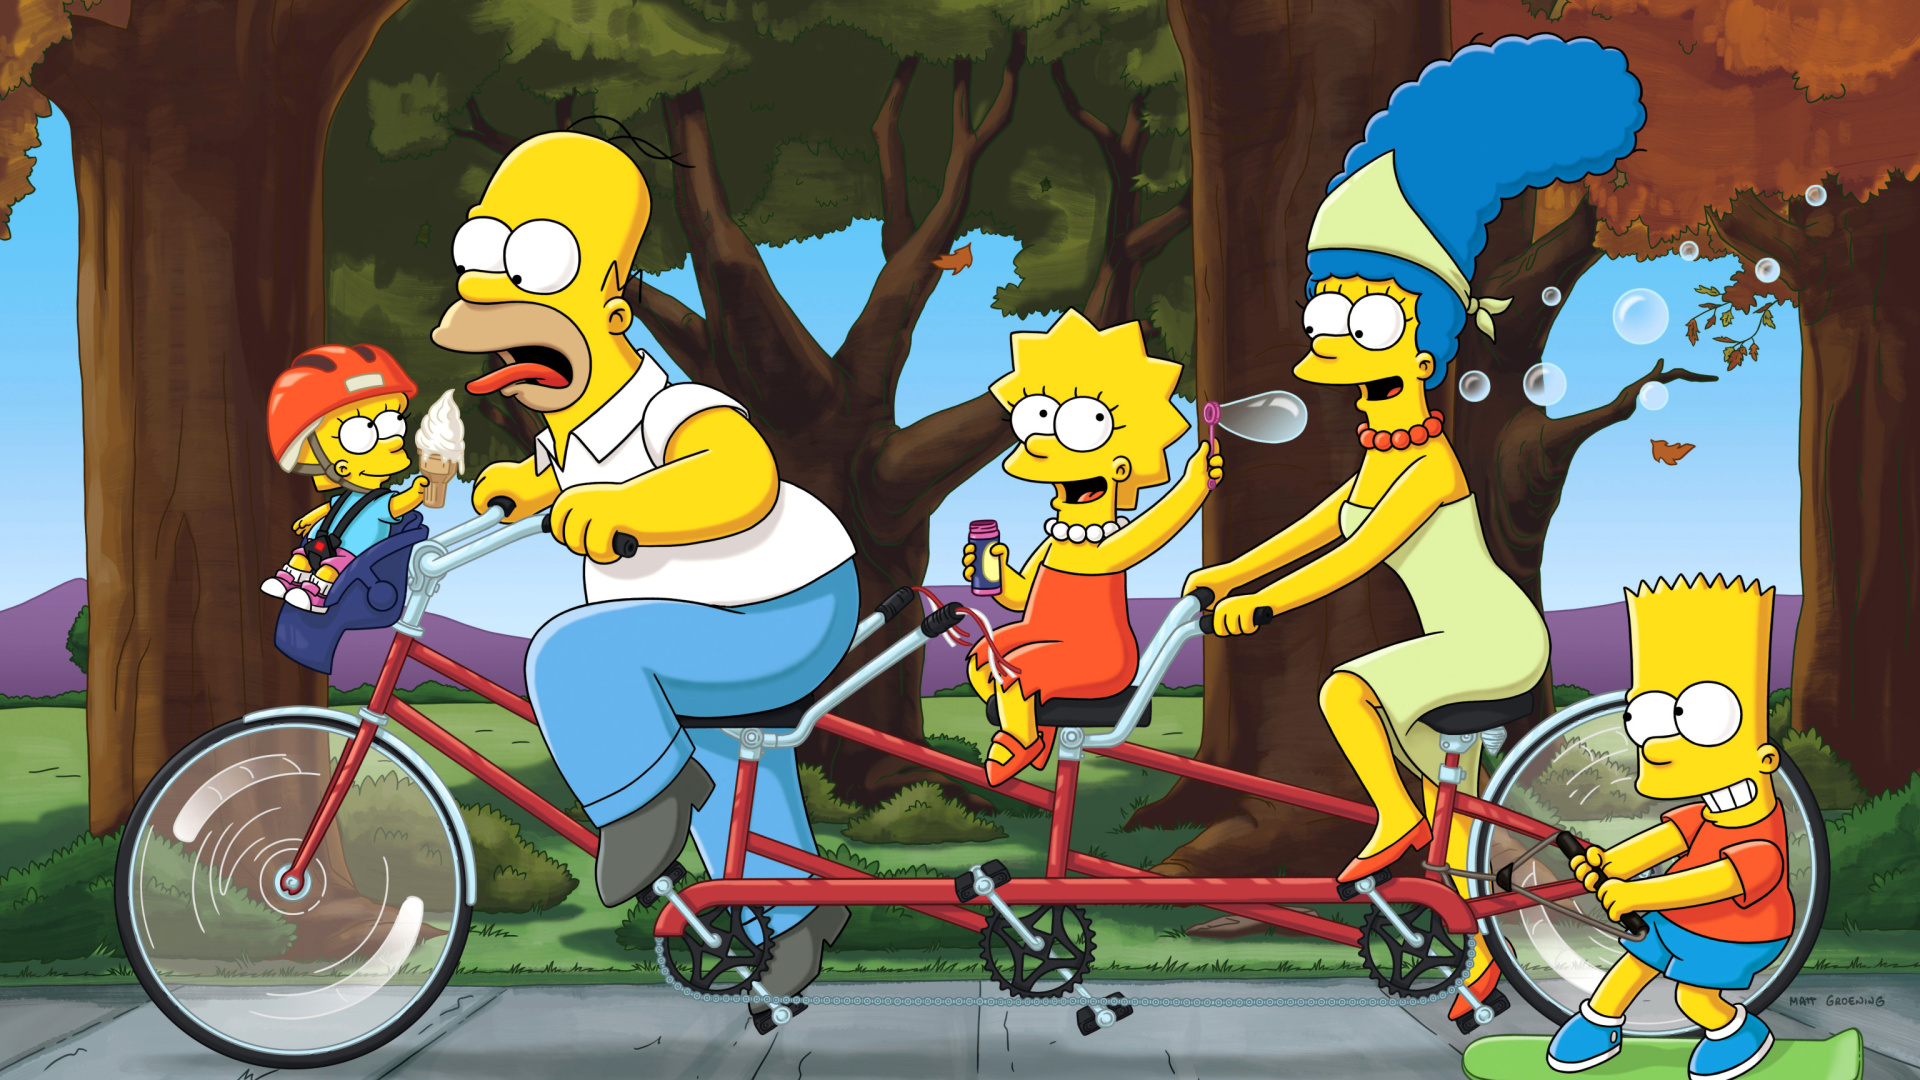 an analysis of american family life in 19990s in the simpsons The simpsons are far more nuanced characters than those played by actual humans on most sitcoms their springfield is a well-defined landscape populated by the likes of apu over at the kwik-e-mart.